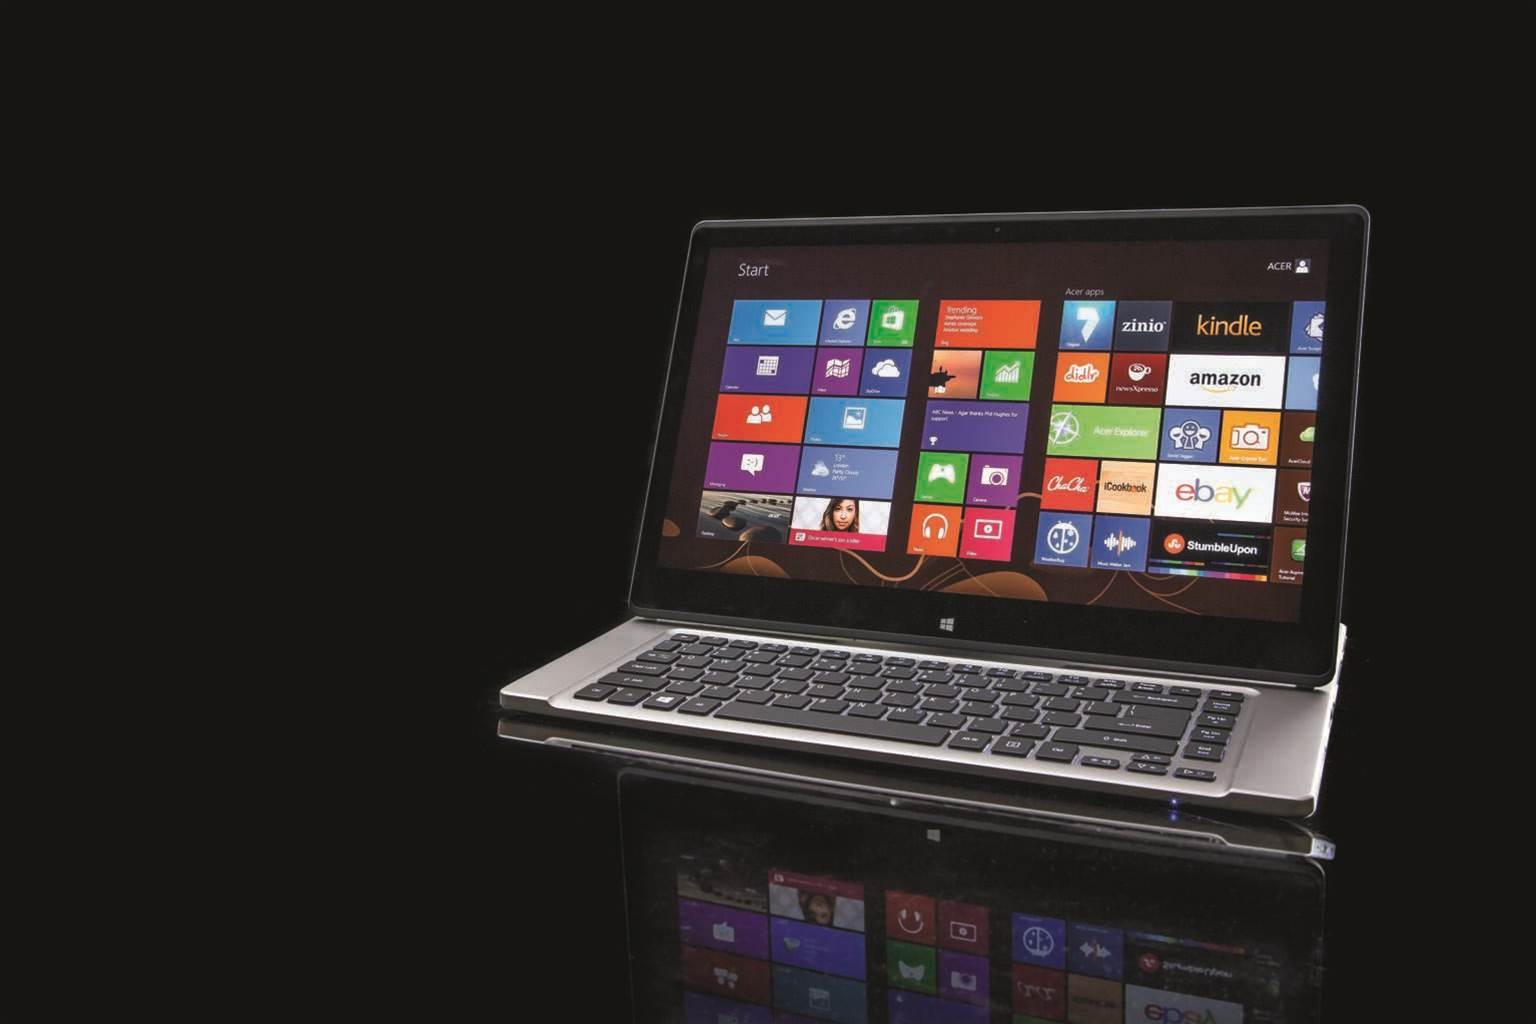 Review: Acer R7